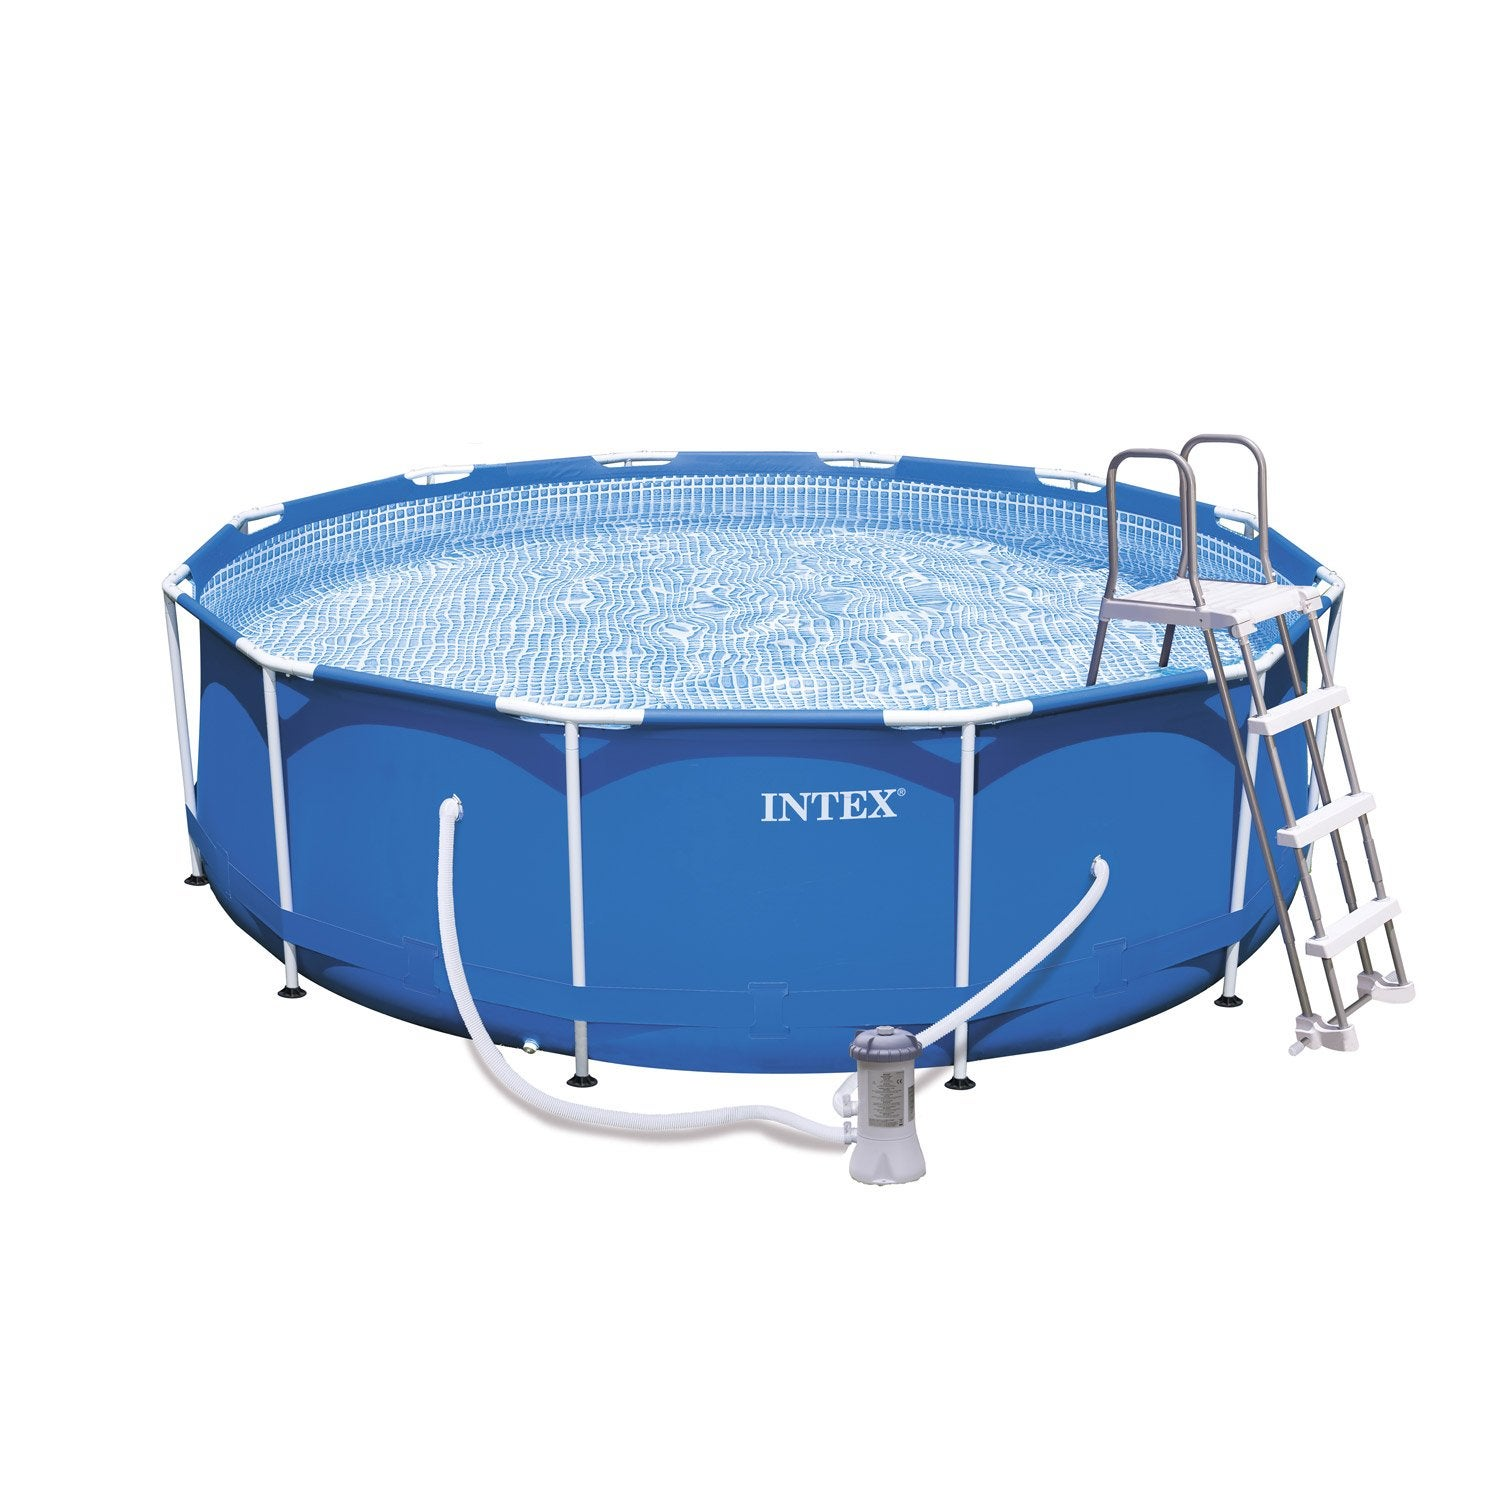 Piscine hors sol autoportante tubulaire m tal frame intex for Piscine bestway 3 66